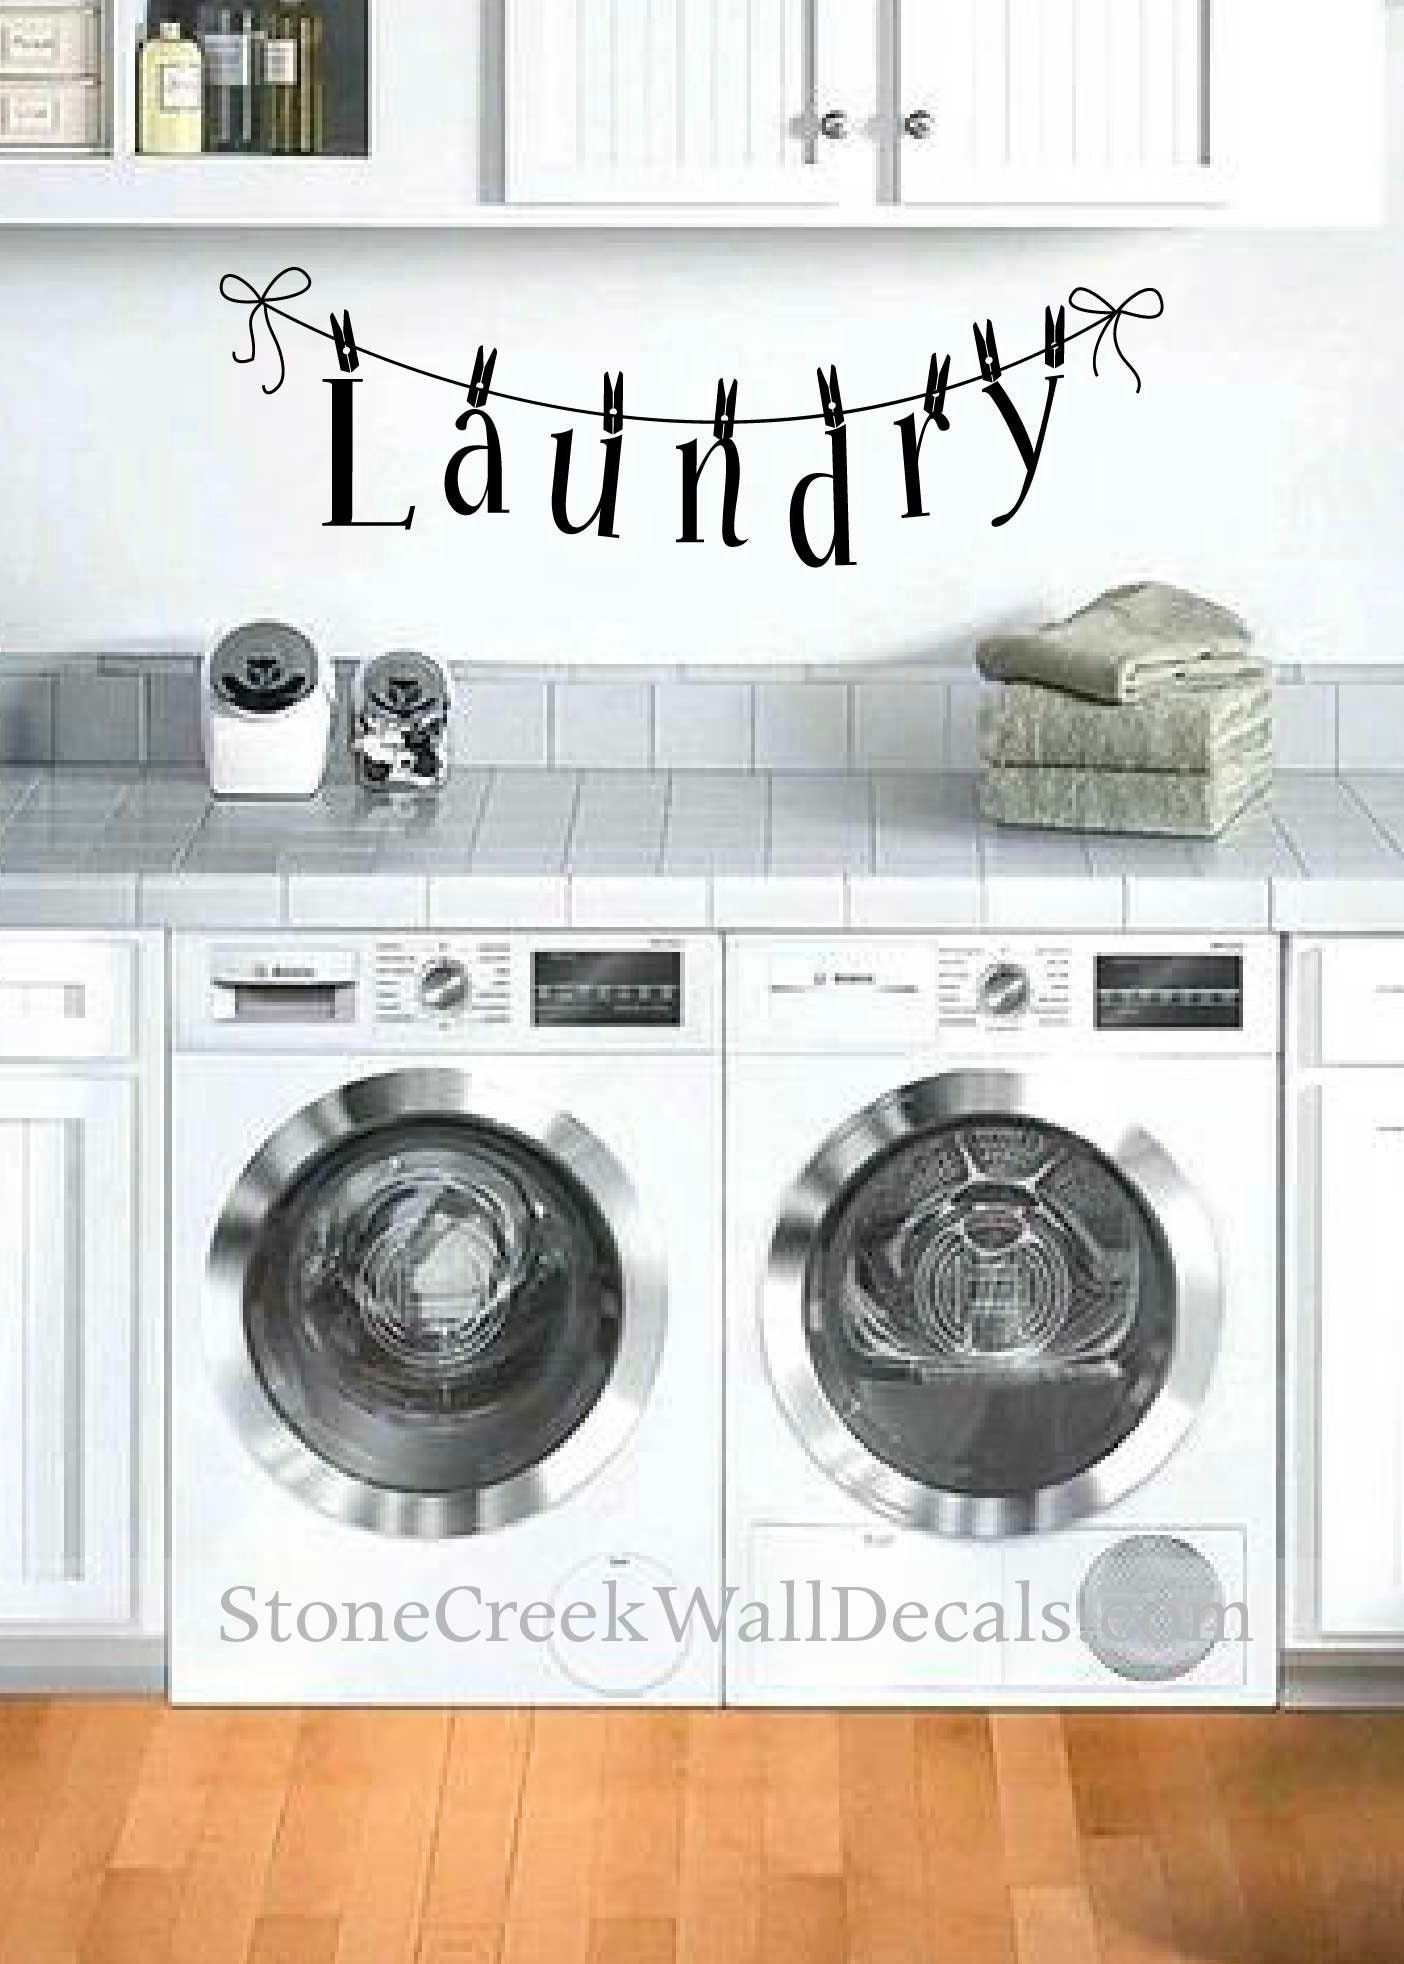 Laundry Clothesline Vinyl Wall Decal Laundry Room Vinyl Wall Decal